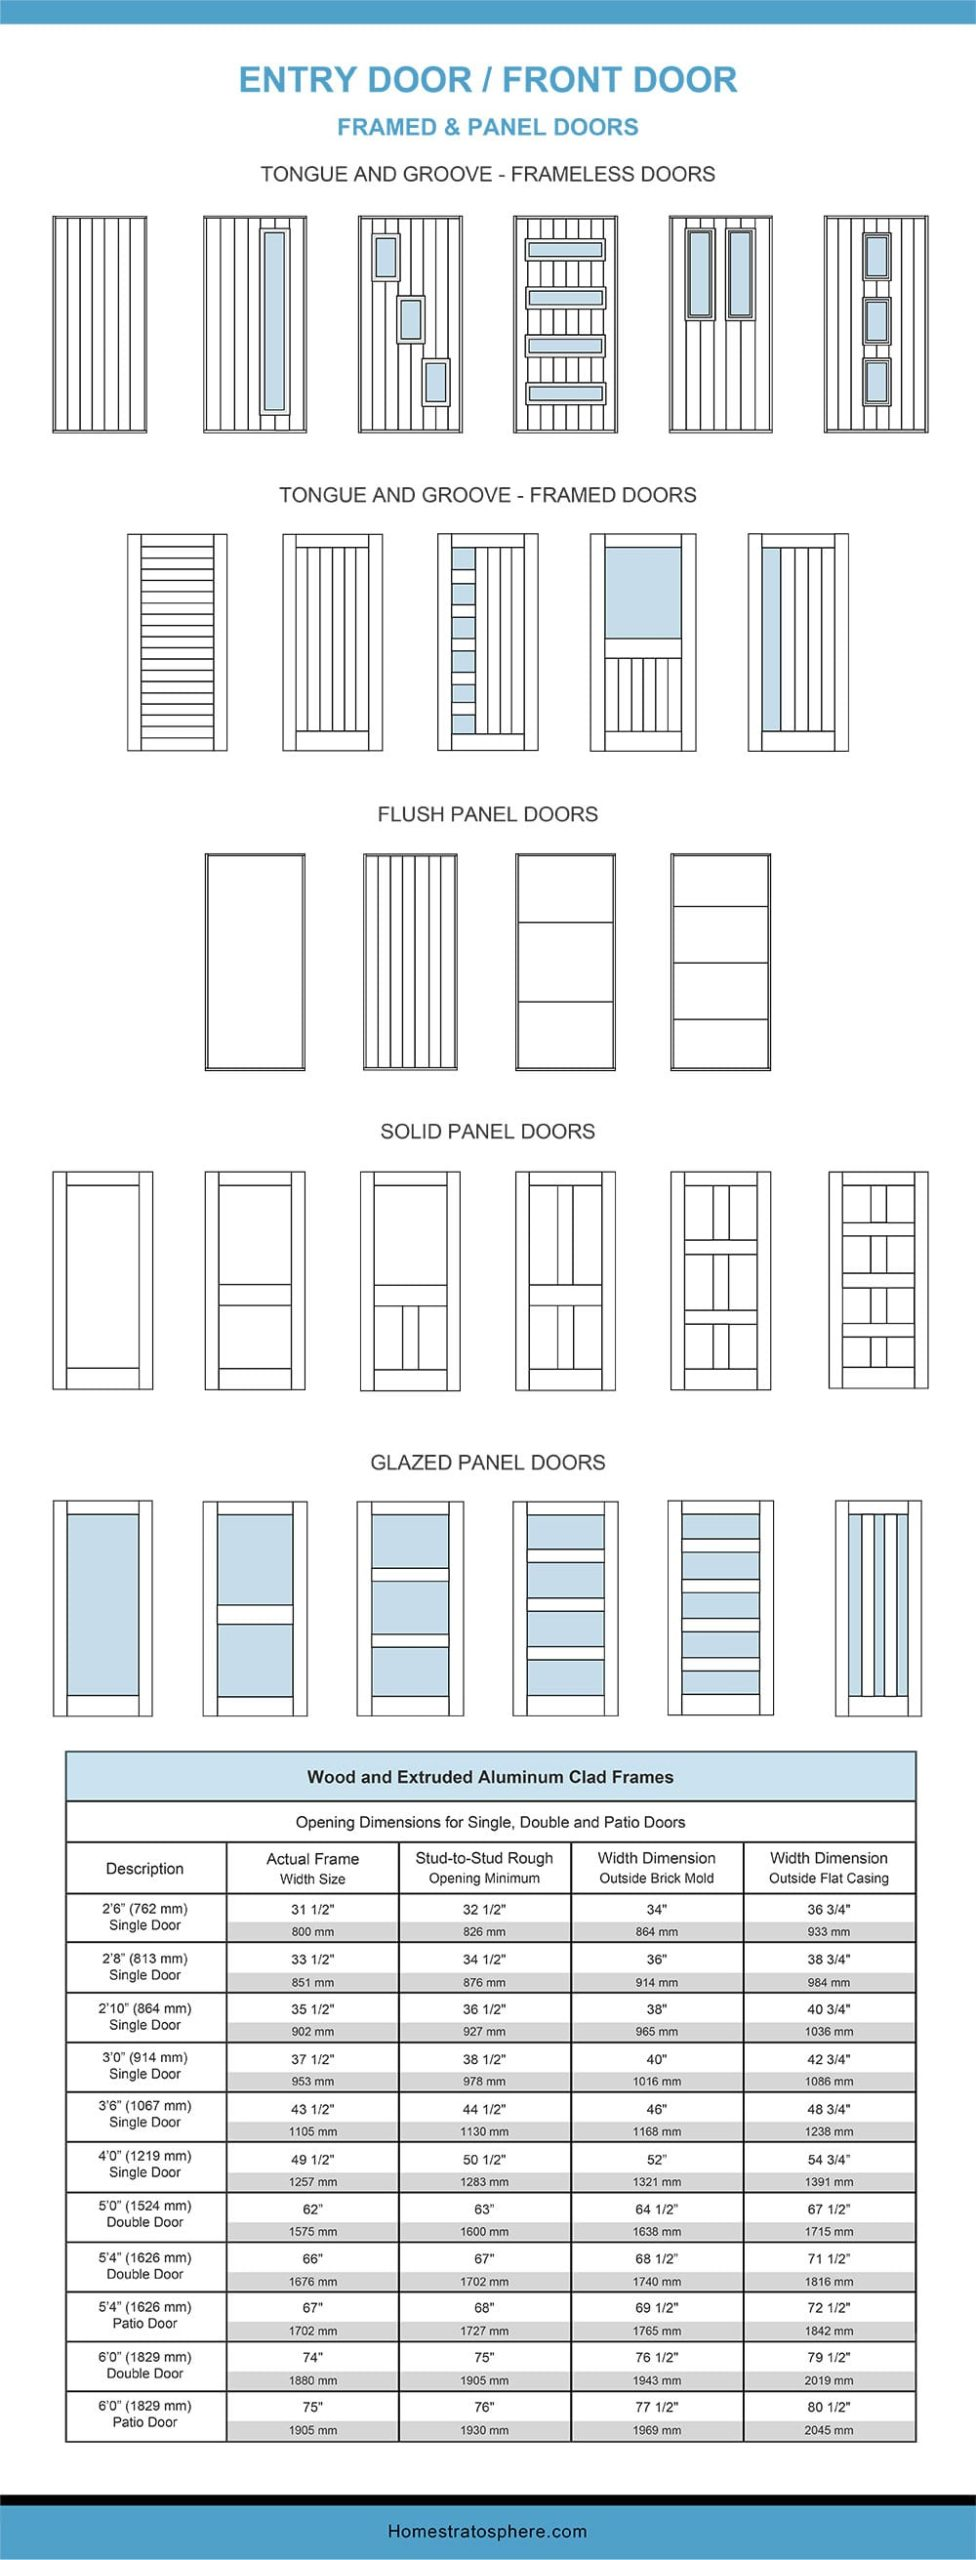 Chart Dimensions of an Entry Door- Front Door Frames and Panel Doors